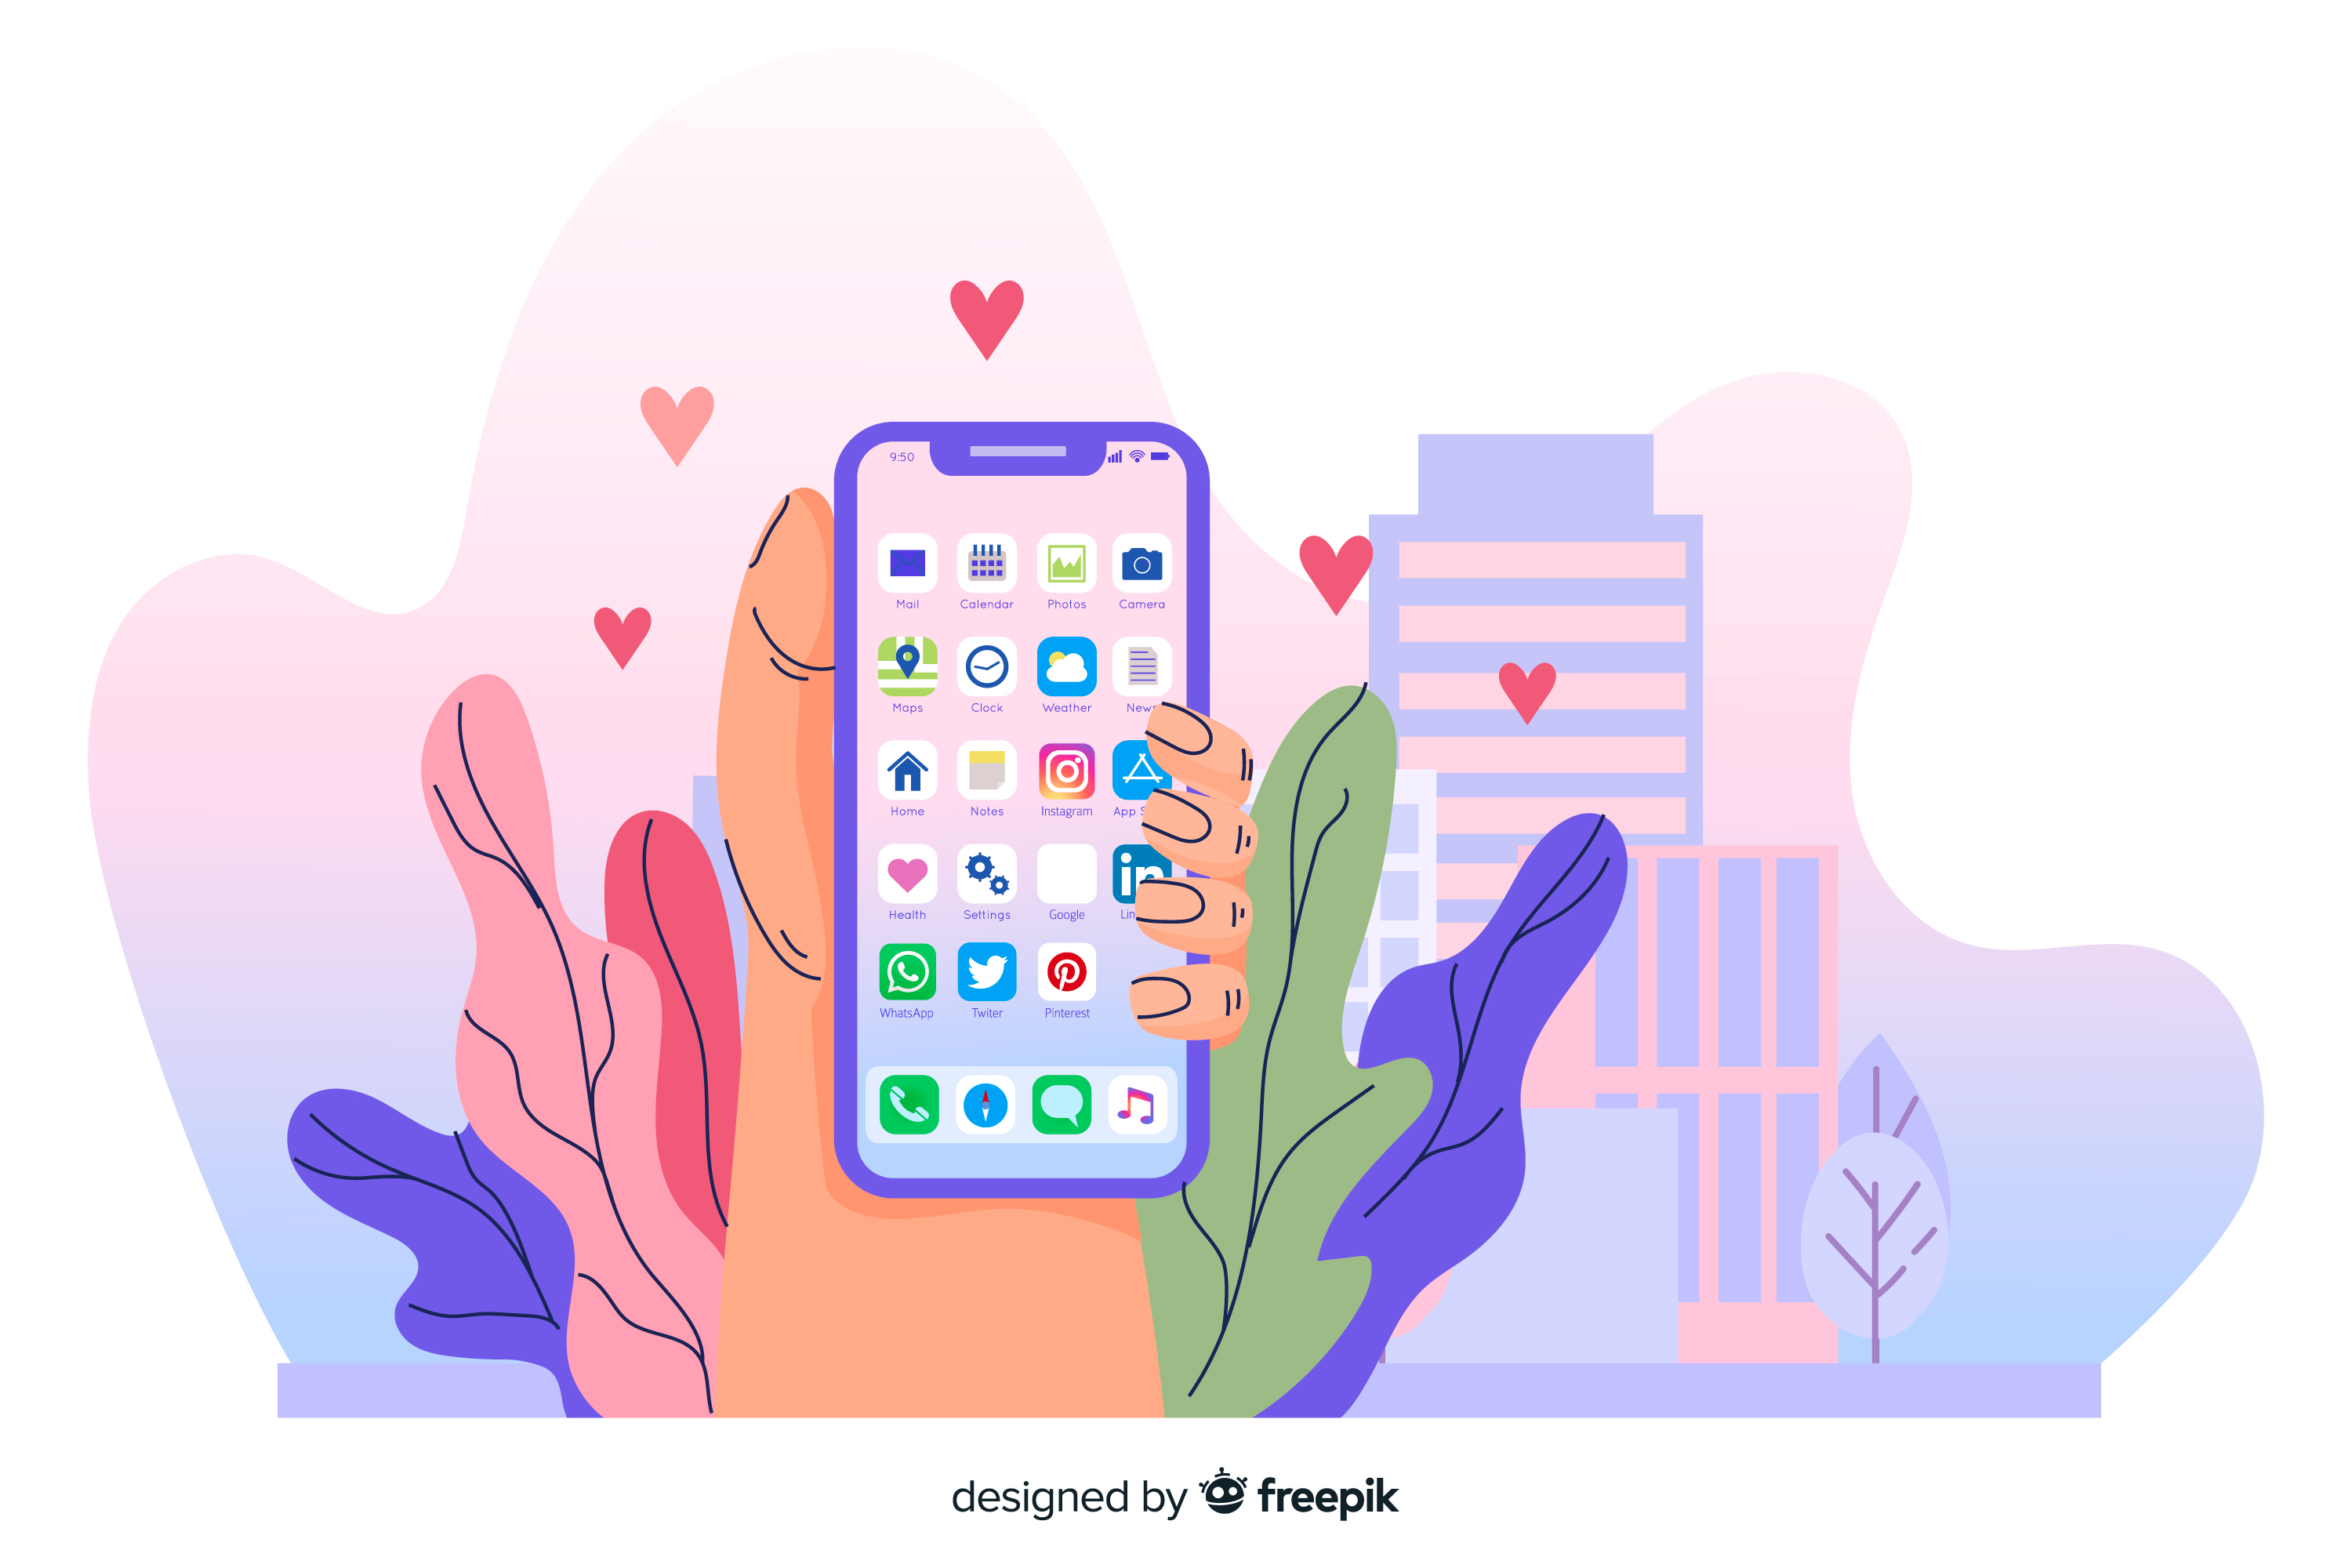 illustration of hand holding a phone with icons for native and hybrid apps displayed